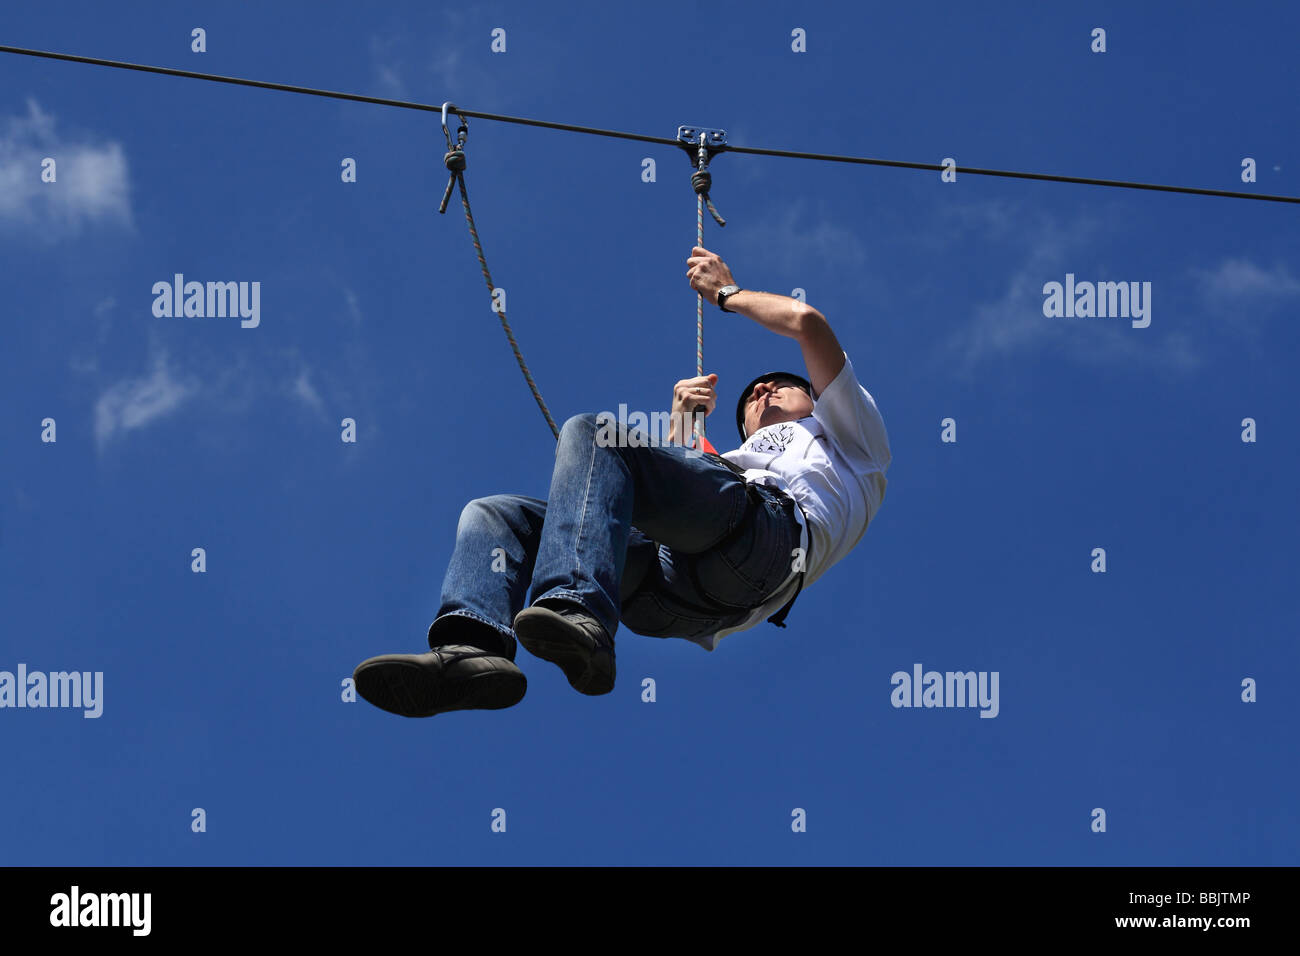 hight resolution of slide down the wire at an adevnture playground stock image